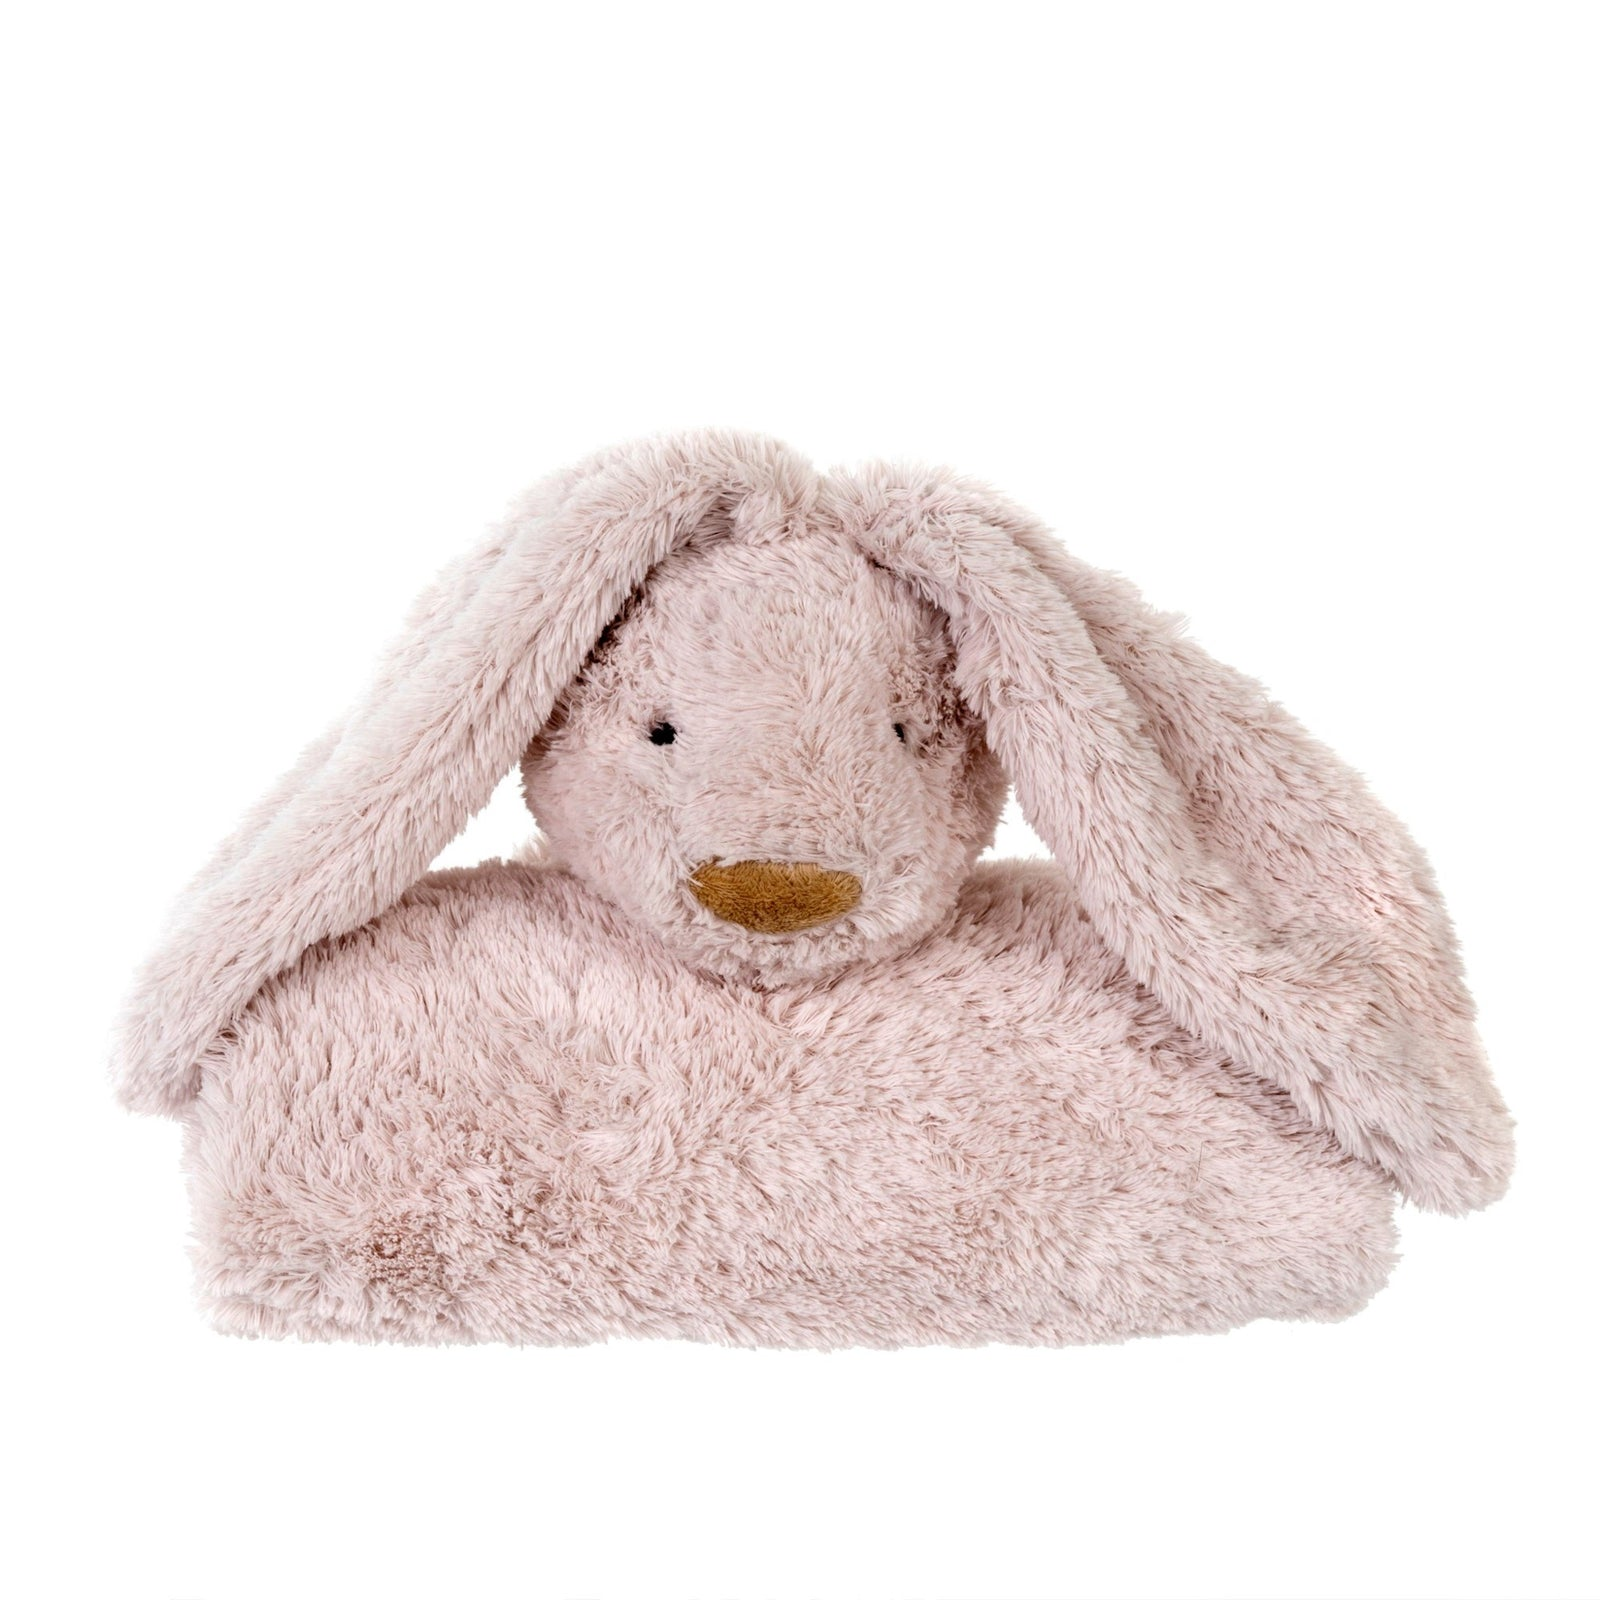 Bunny Soother Blanket